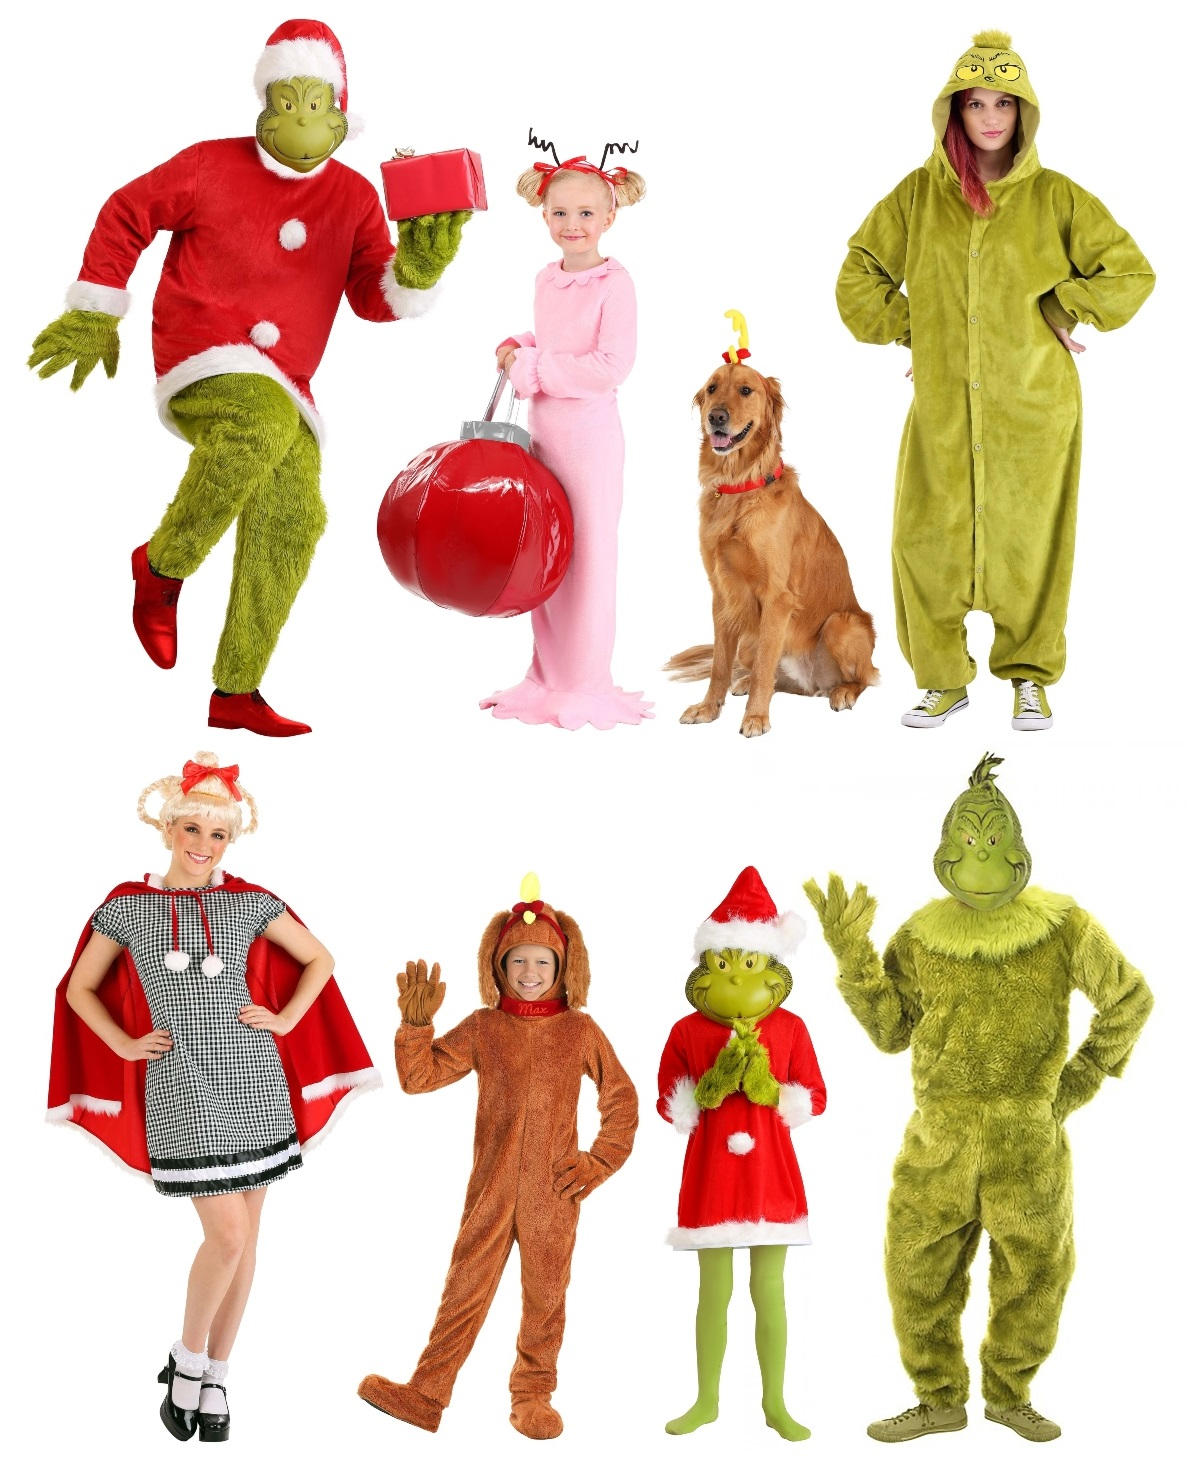 The Best Christmas Costumes From Movies Halloweencostumes Com Blog